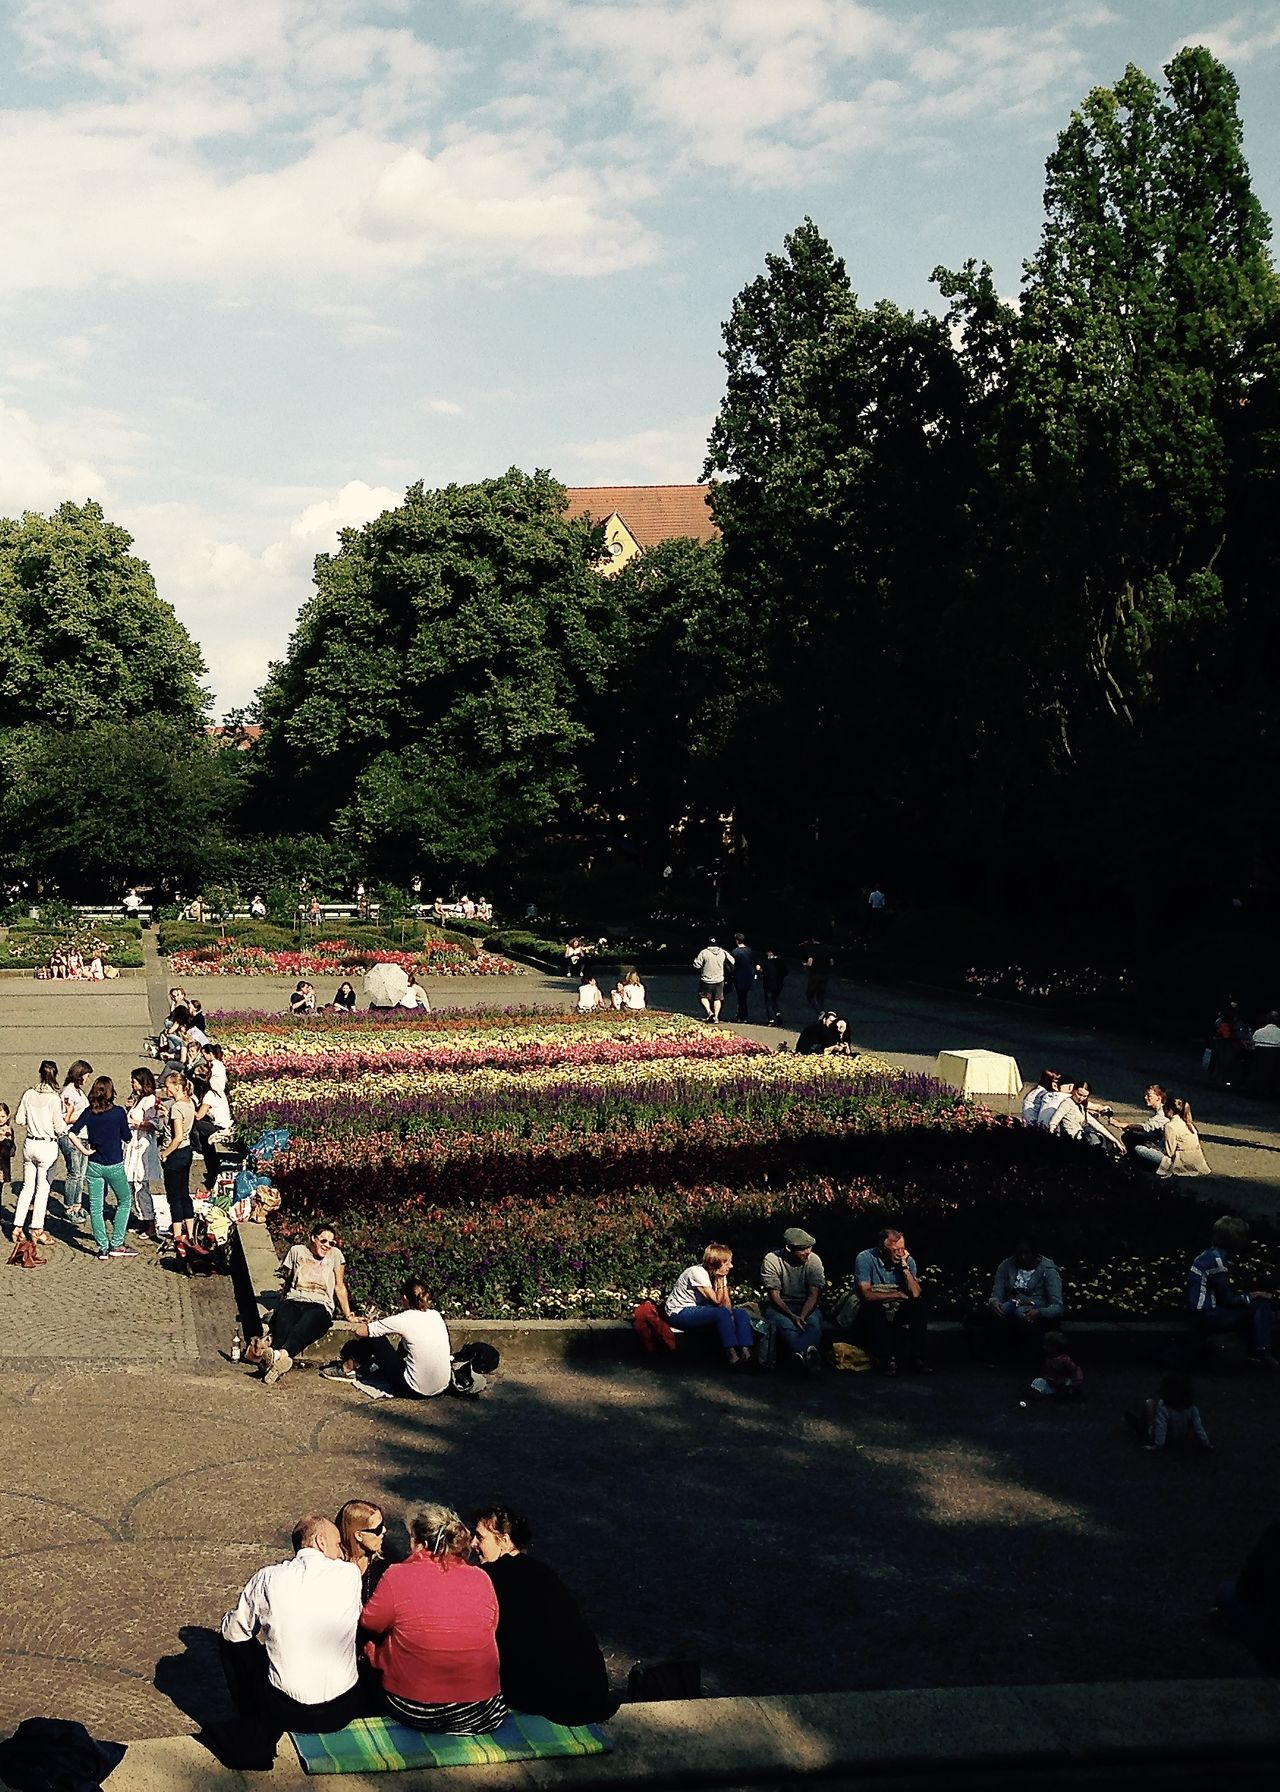 summer in the city, urban life berlin Berlin Colors Impression Light Relaxing Roof Rüdesheimer Platz Audience Berliner Ansichten Crowd Enjoyment Flowers Large Group Of People Nature Outdoors Park People Shadow Sky Streetphotography Togetherness Tree Urban Landscape